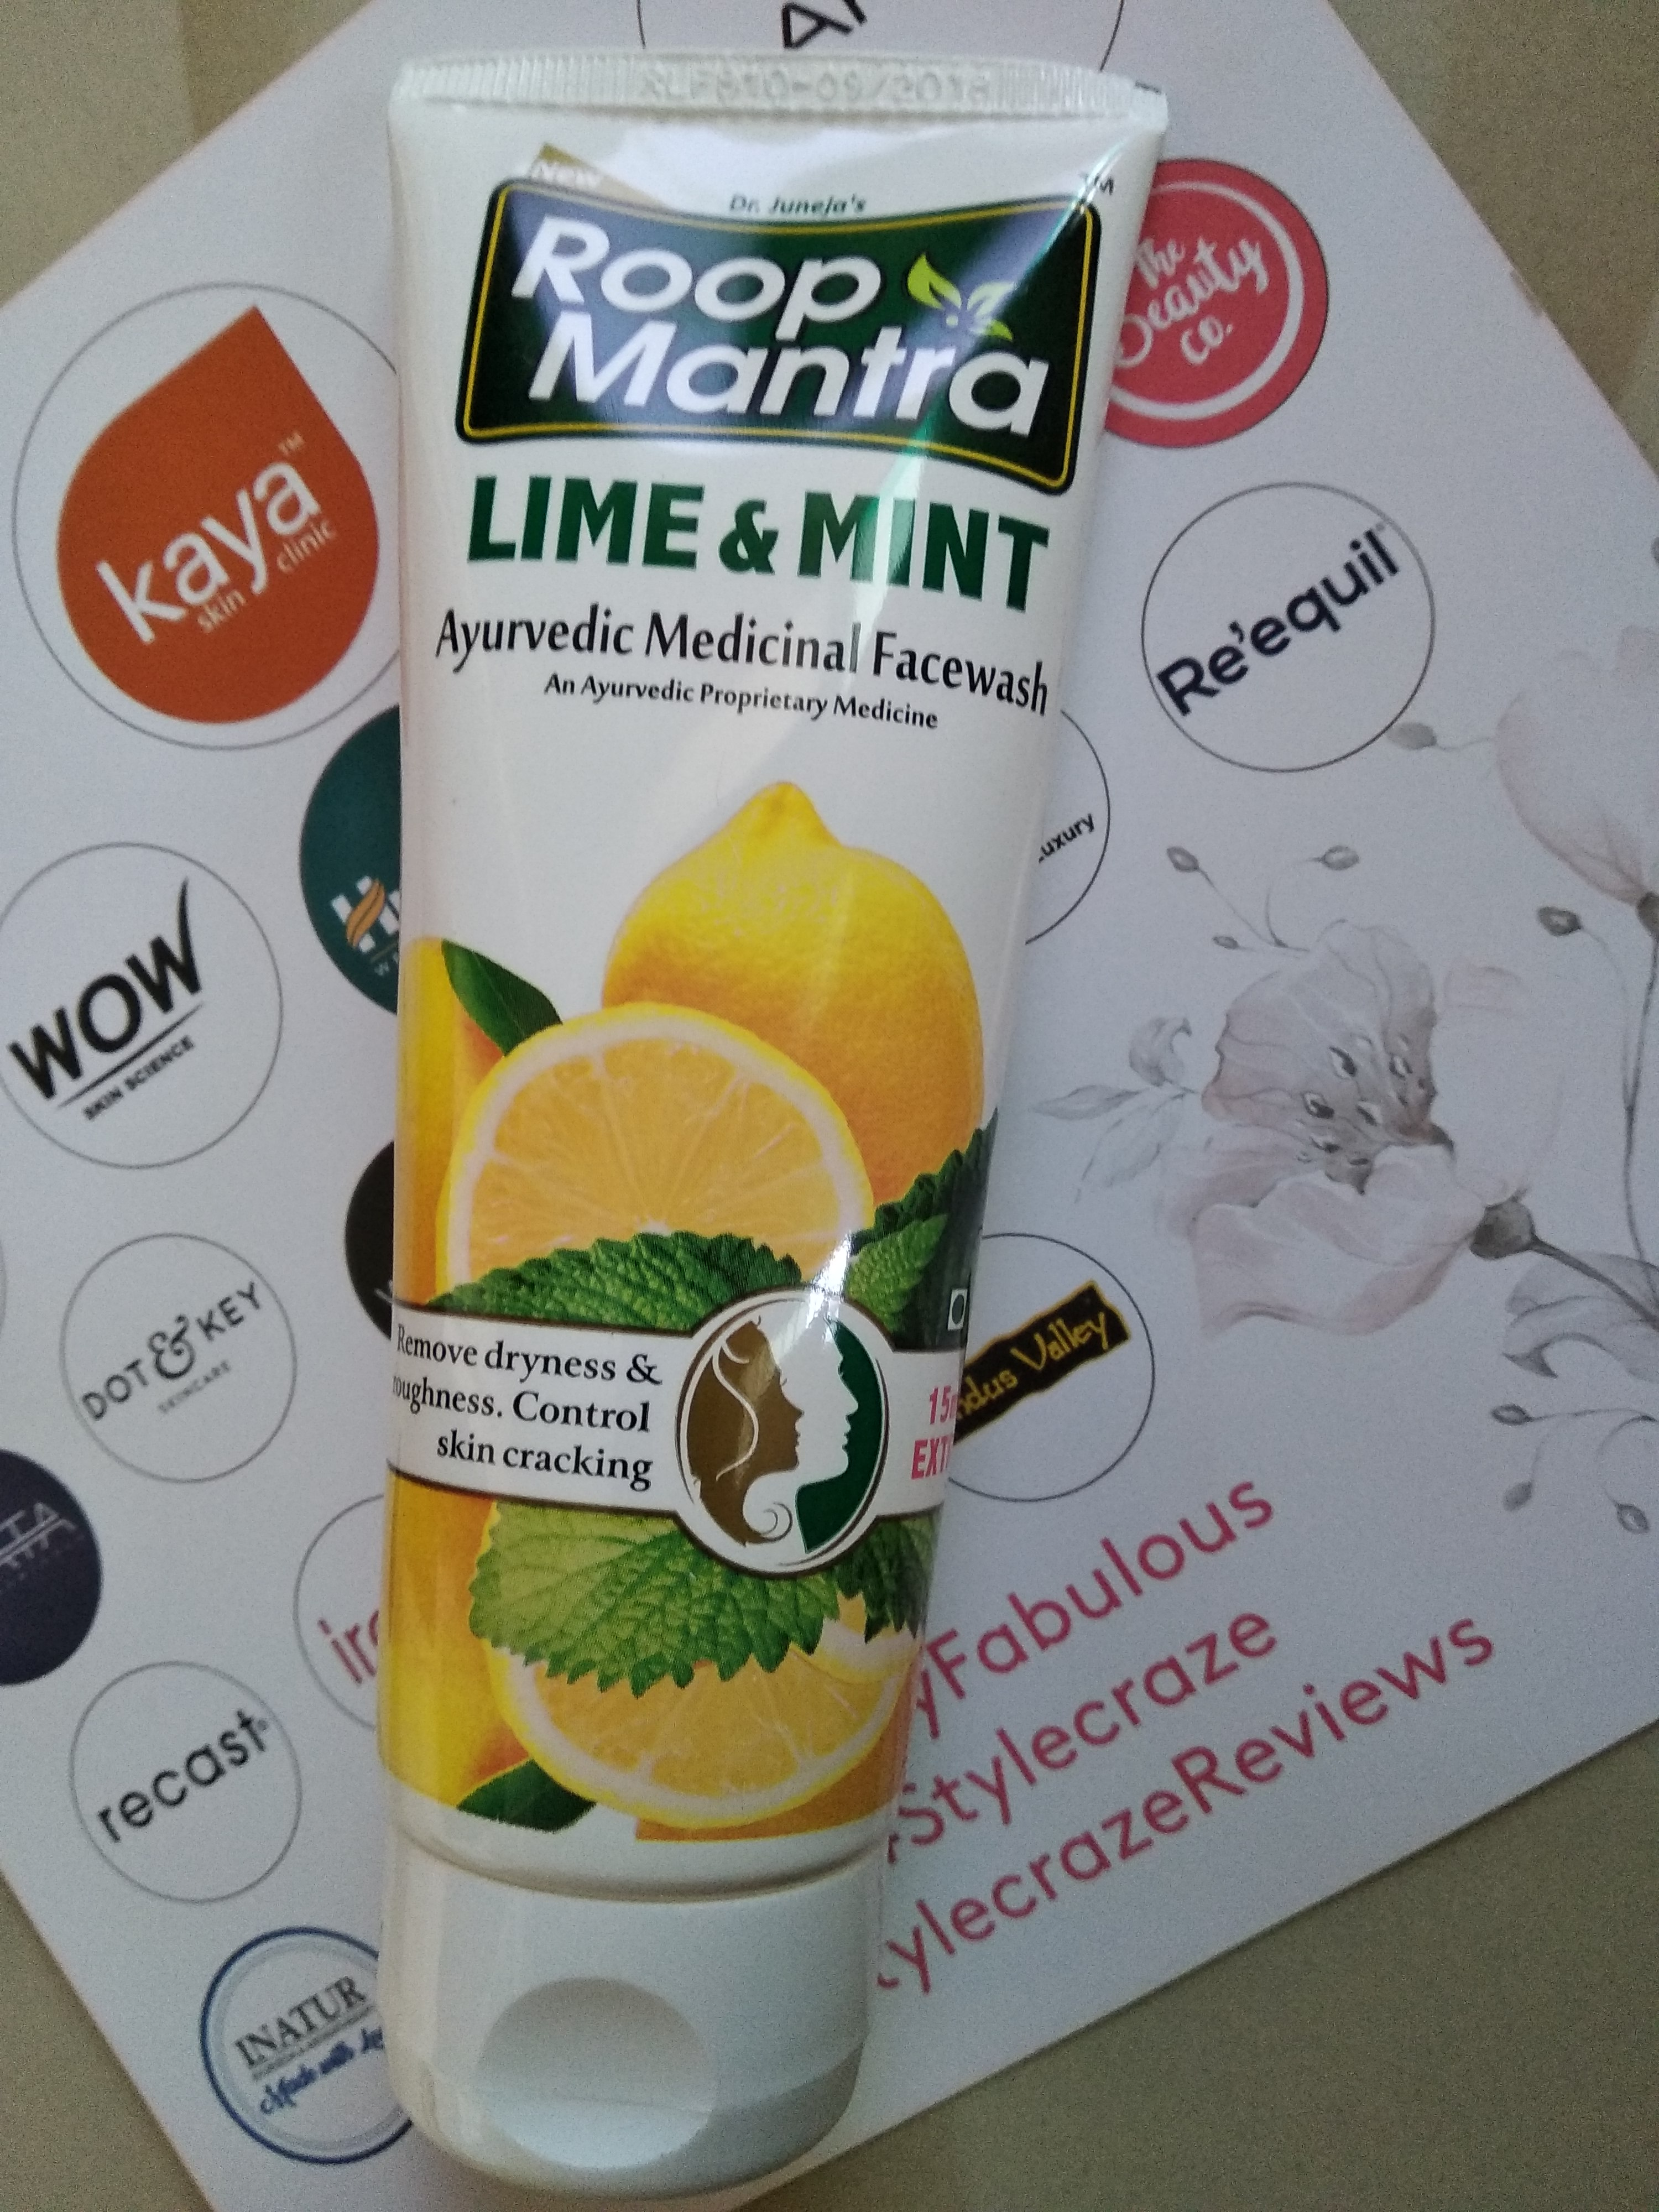 Roop Mantra Lime & Mint Face Wash-Amazing Product!-By ashbiha